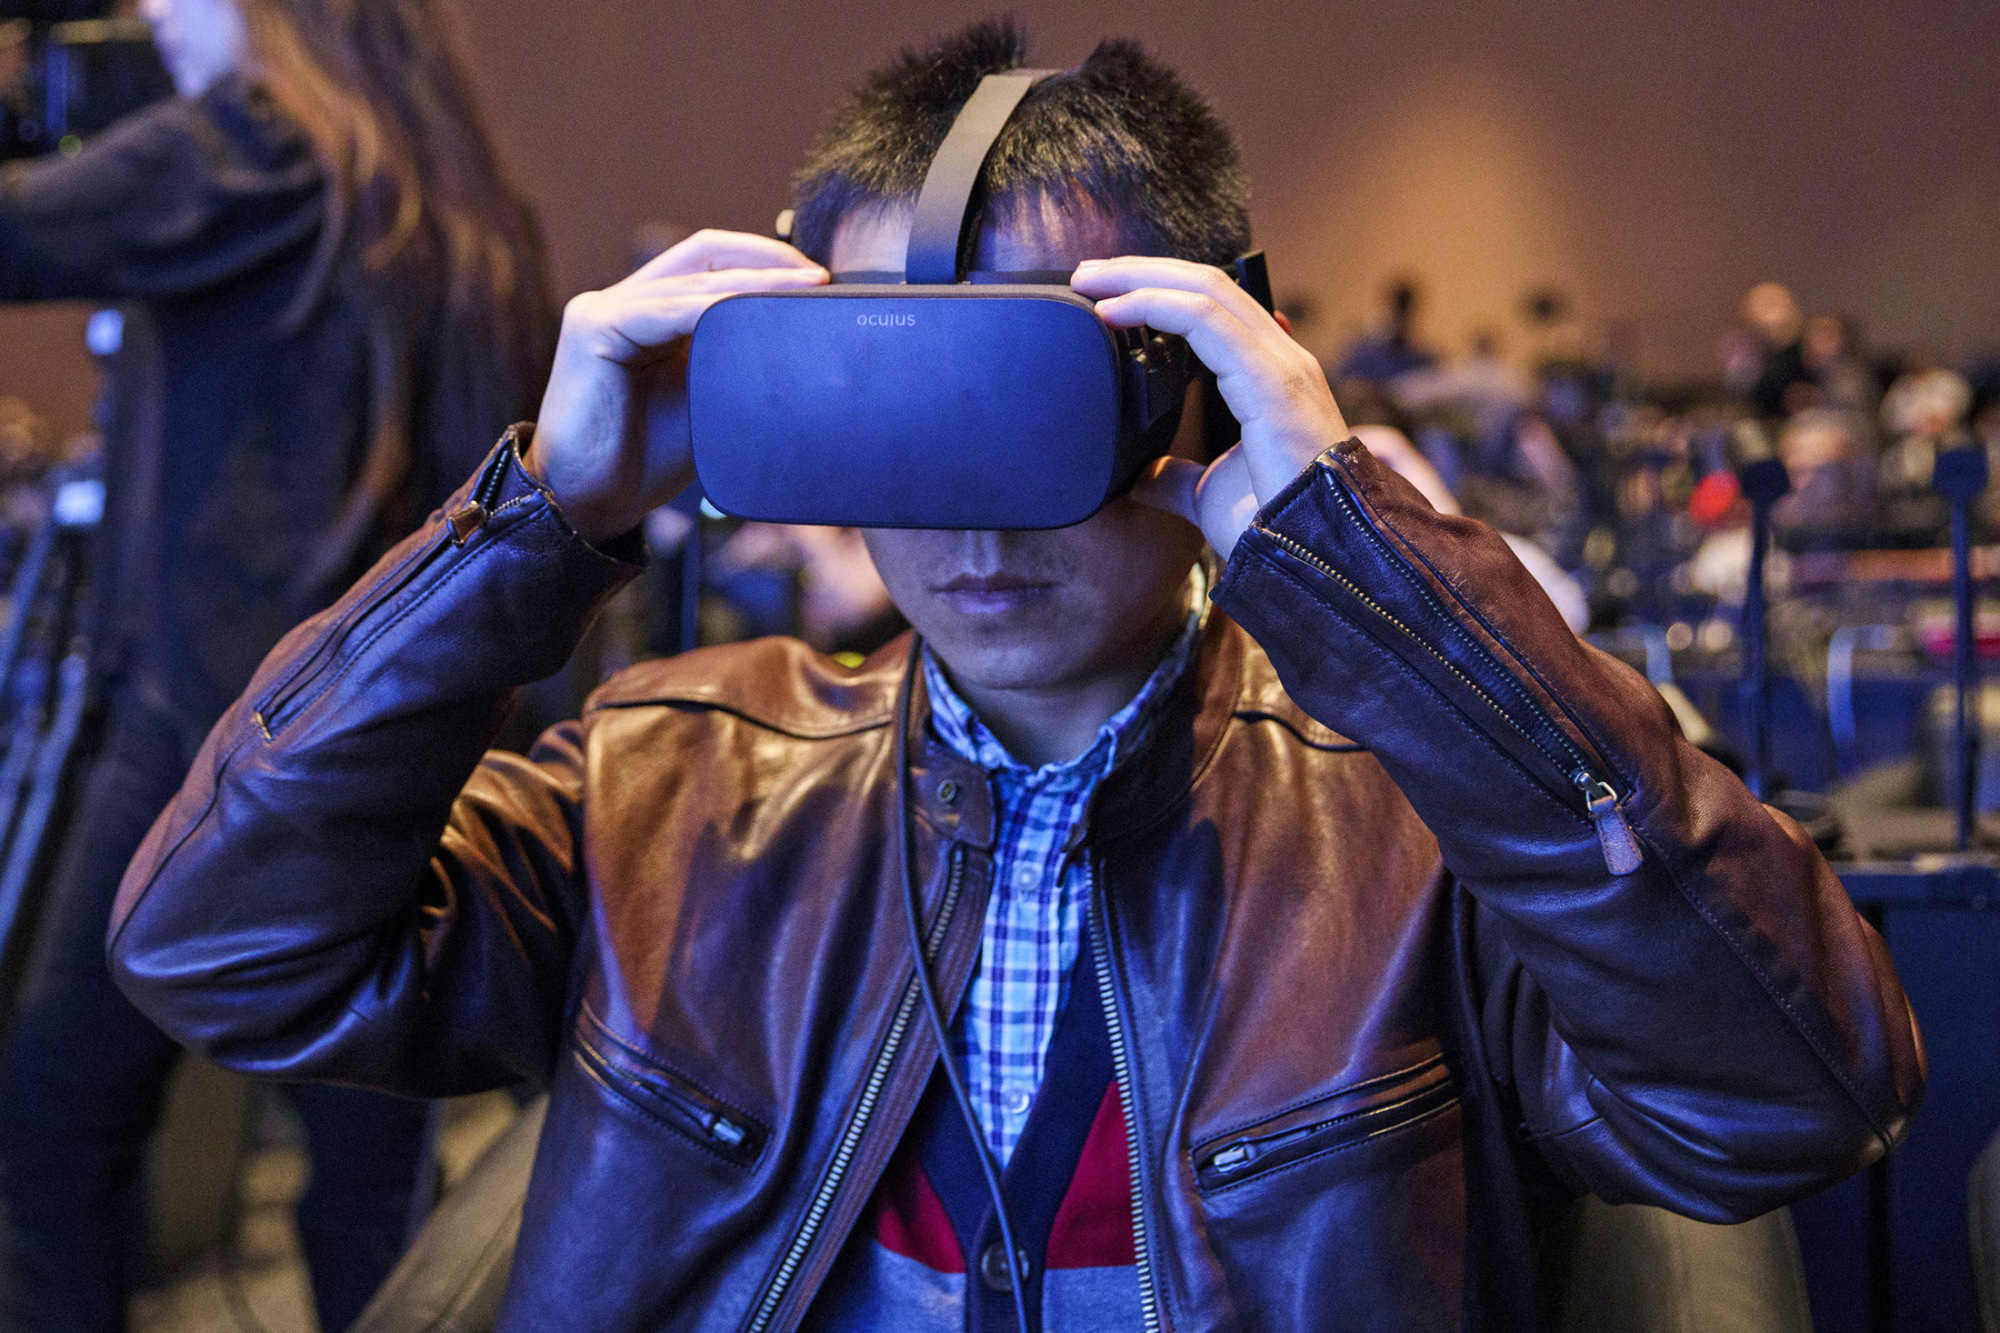 Facebook's Virtual Reality Foray Derided as 'Fanciful Story'